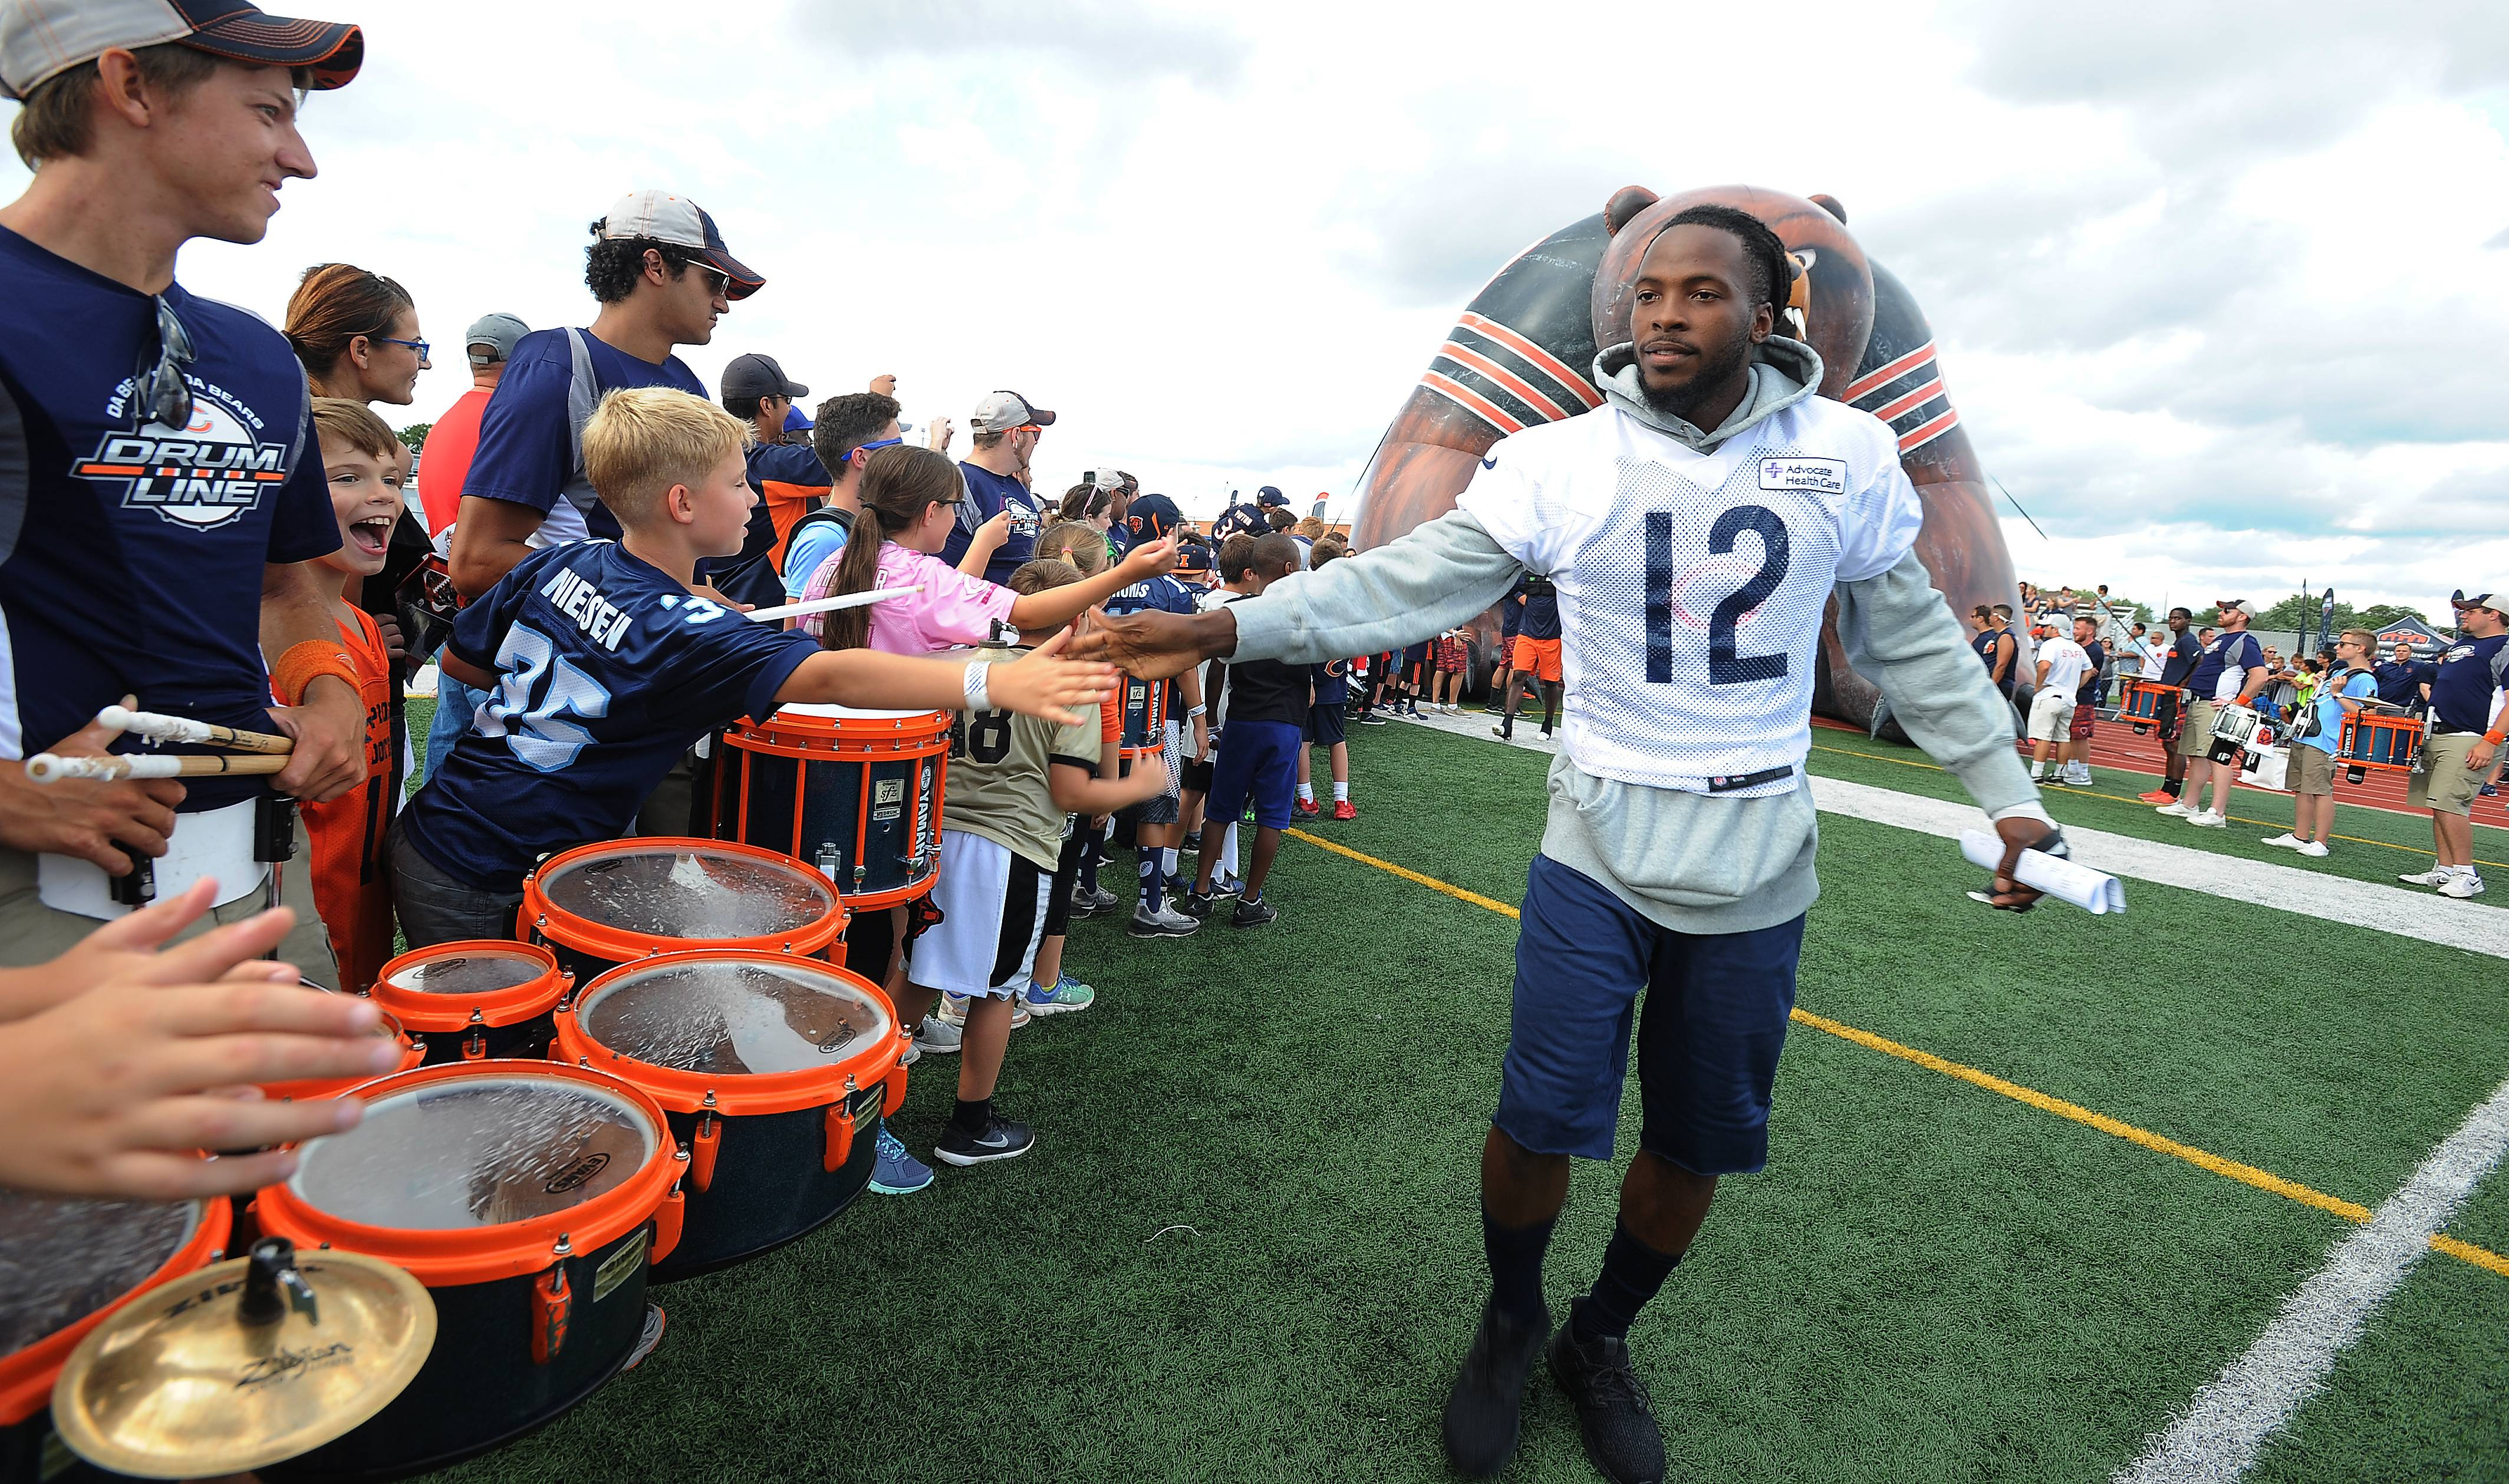 Images: Chicago Bears Practice at Prospect High School